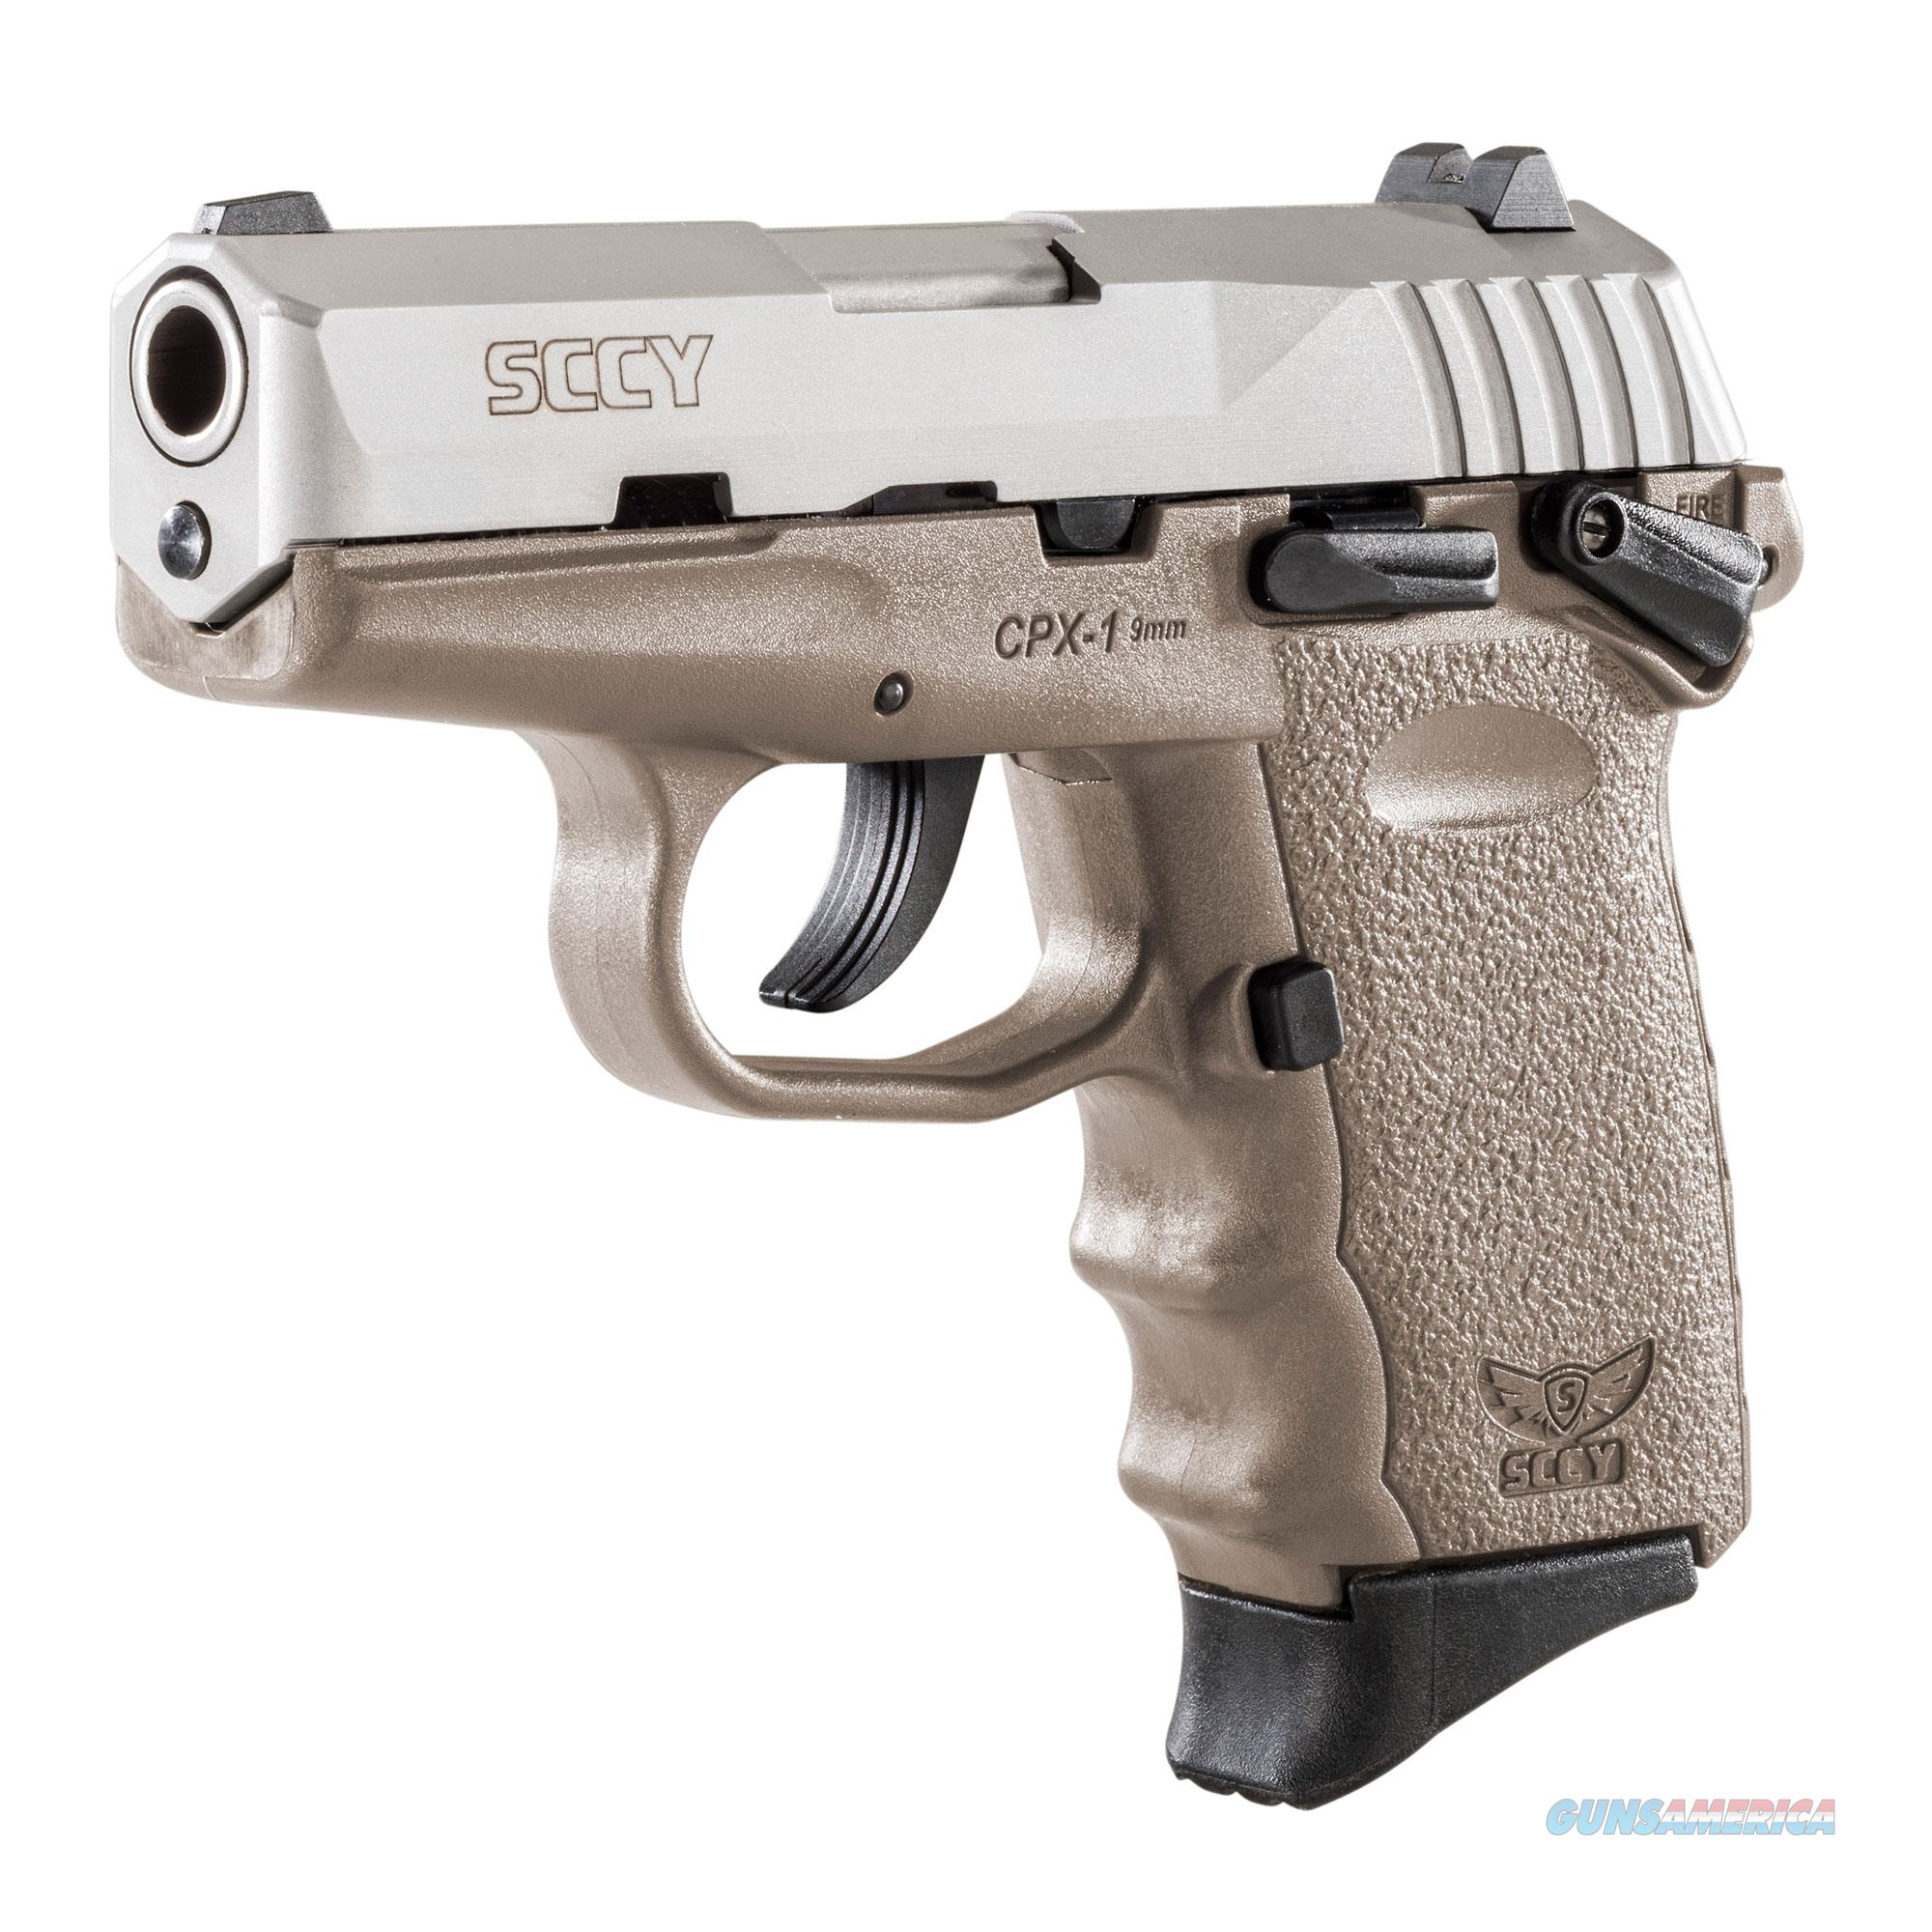 SCCY CPX-1 9mm Auto Pistol with Safety – Satin/FDE - New in Box  Guns > Pistols > SCCY Pistols > CPX1